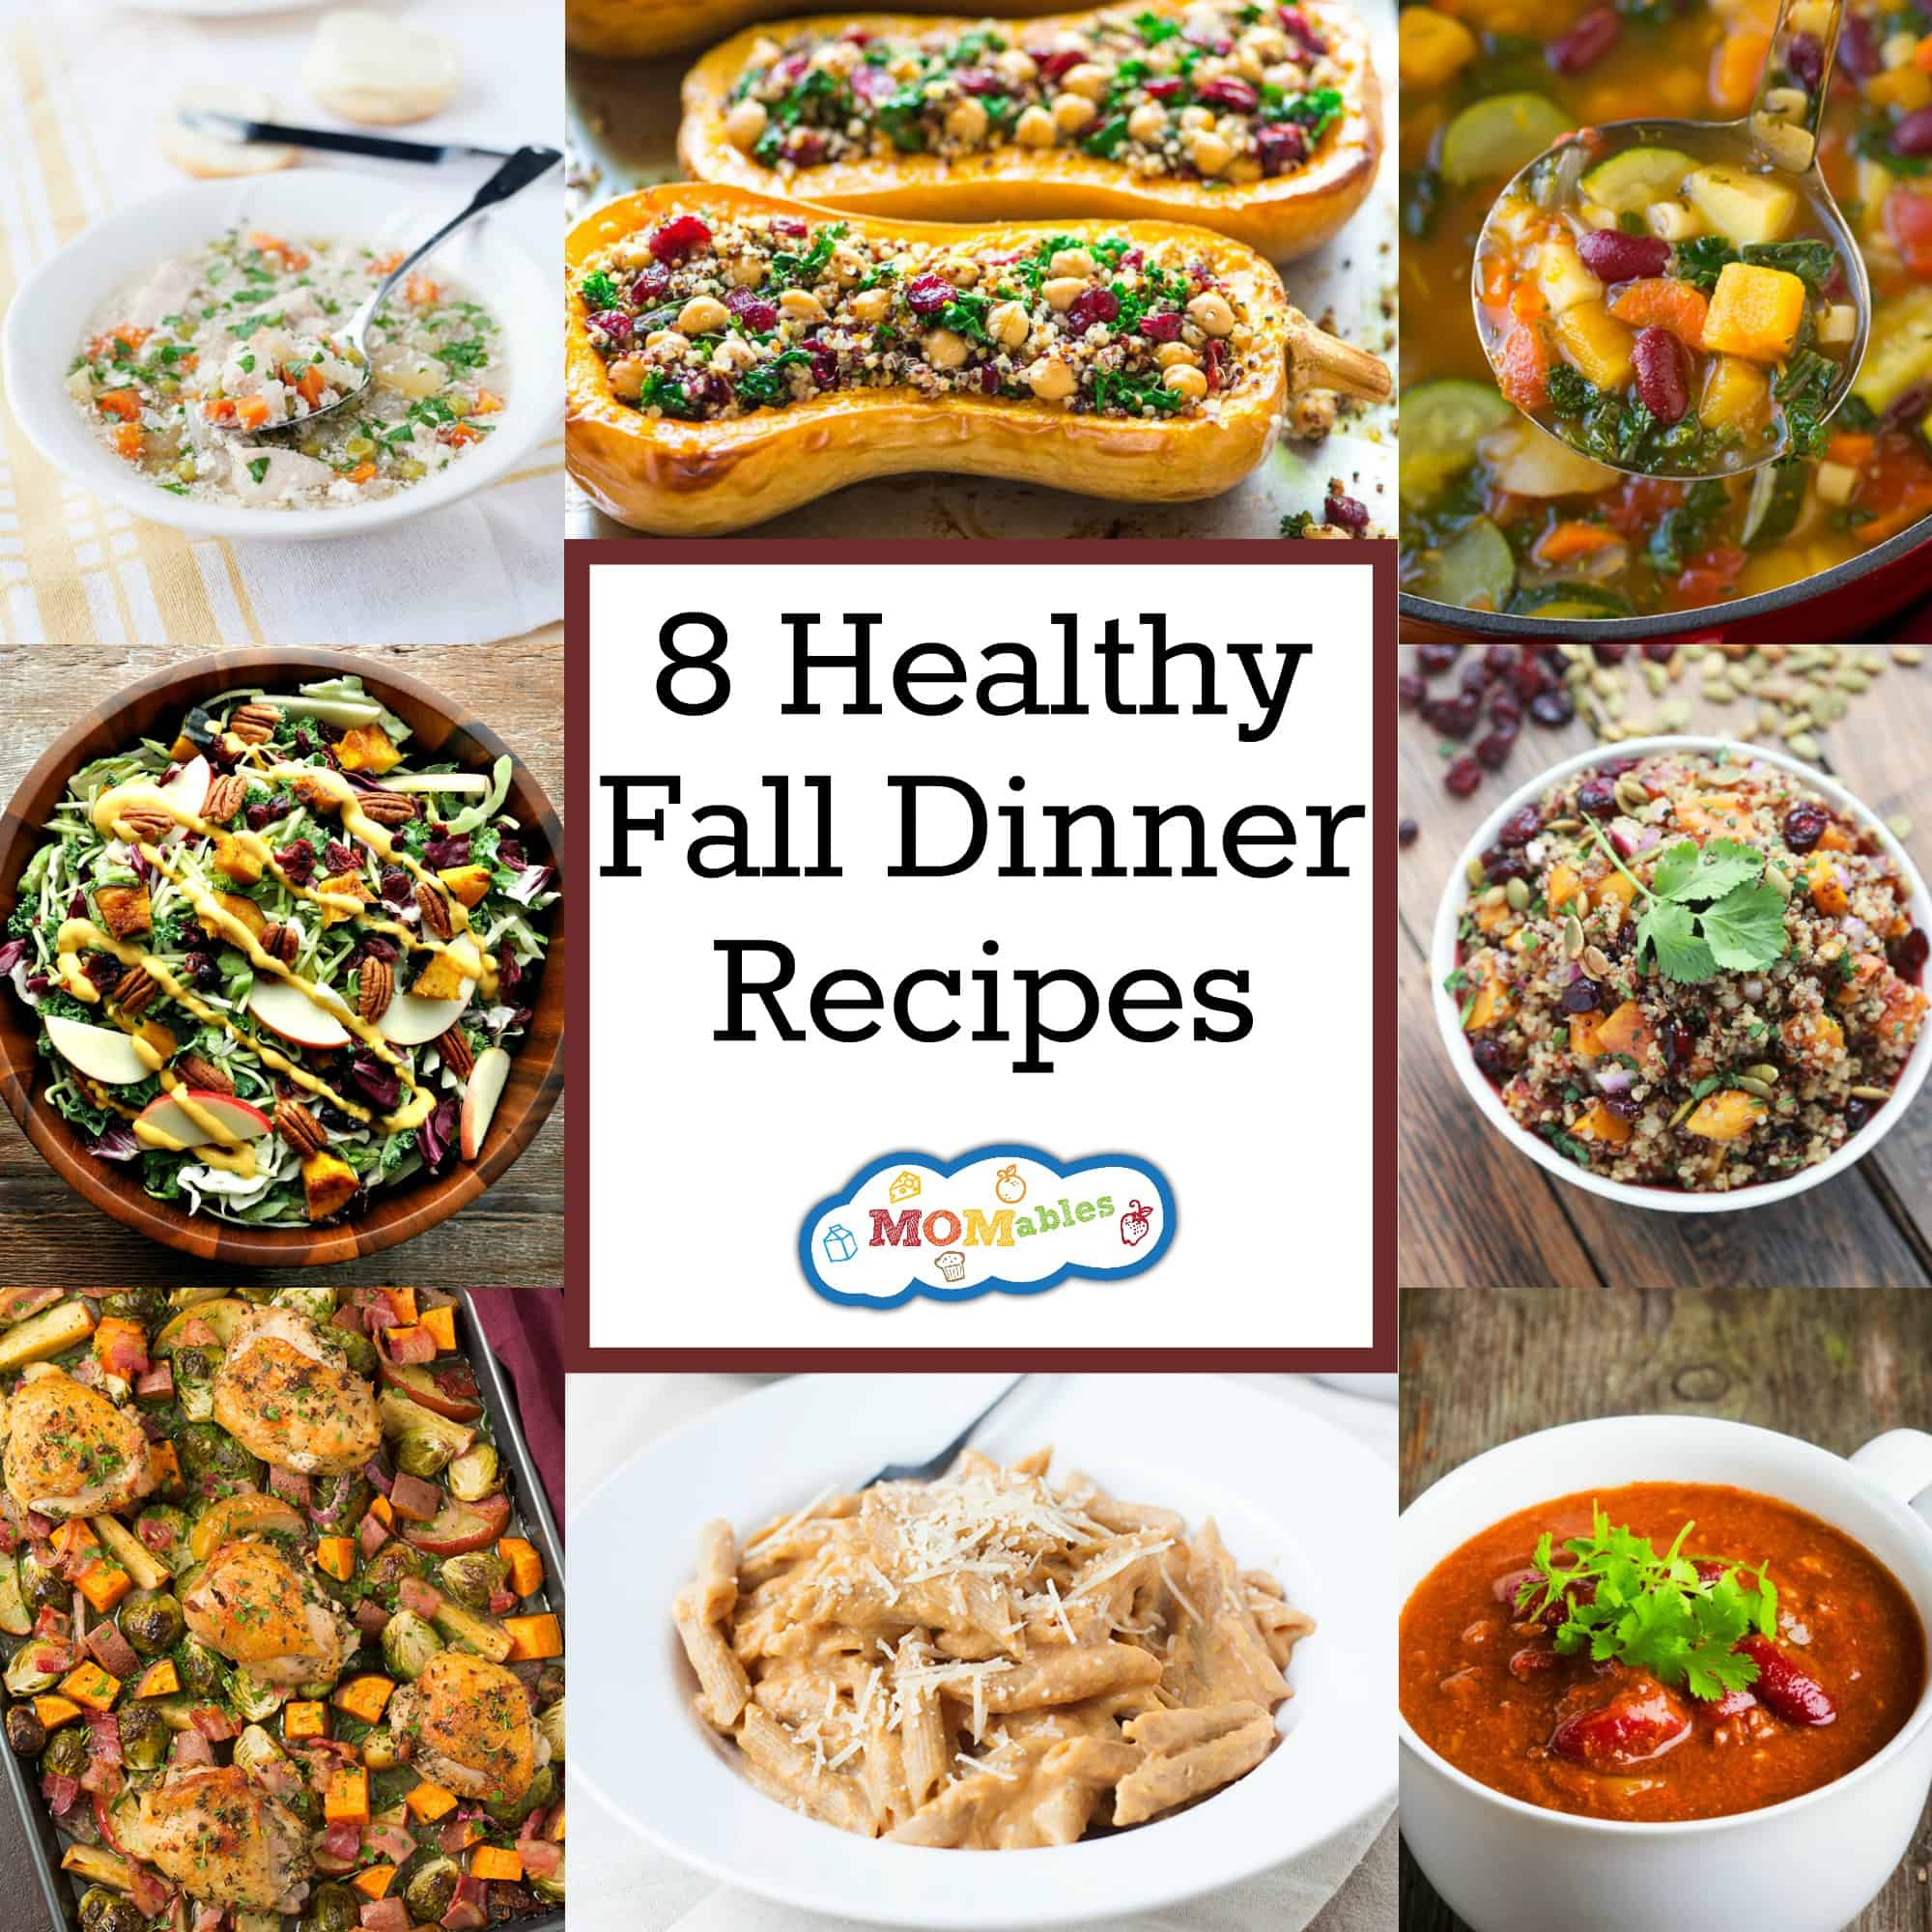 8 Healthy Fall Dinner Recipes